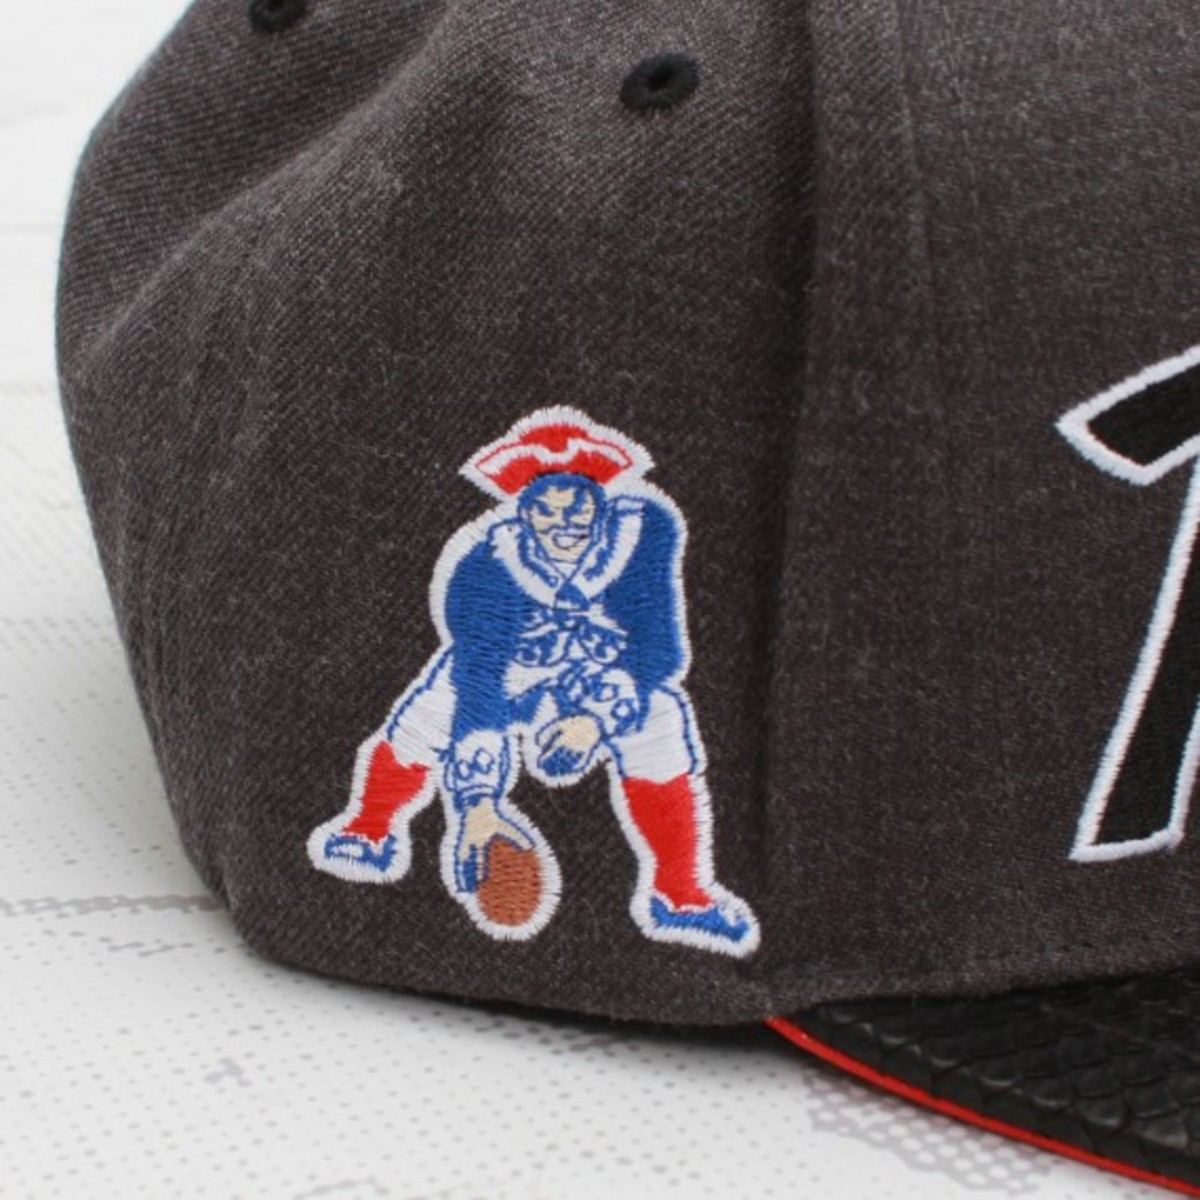 mitchell-ness-x-just-don-for-concepts-boston-teams-logo-python-snapback-caps-2